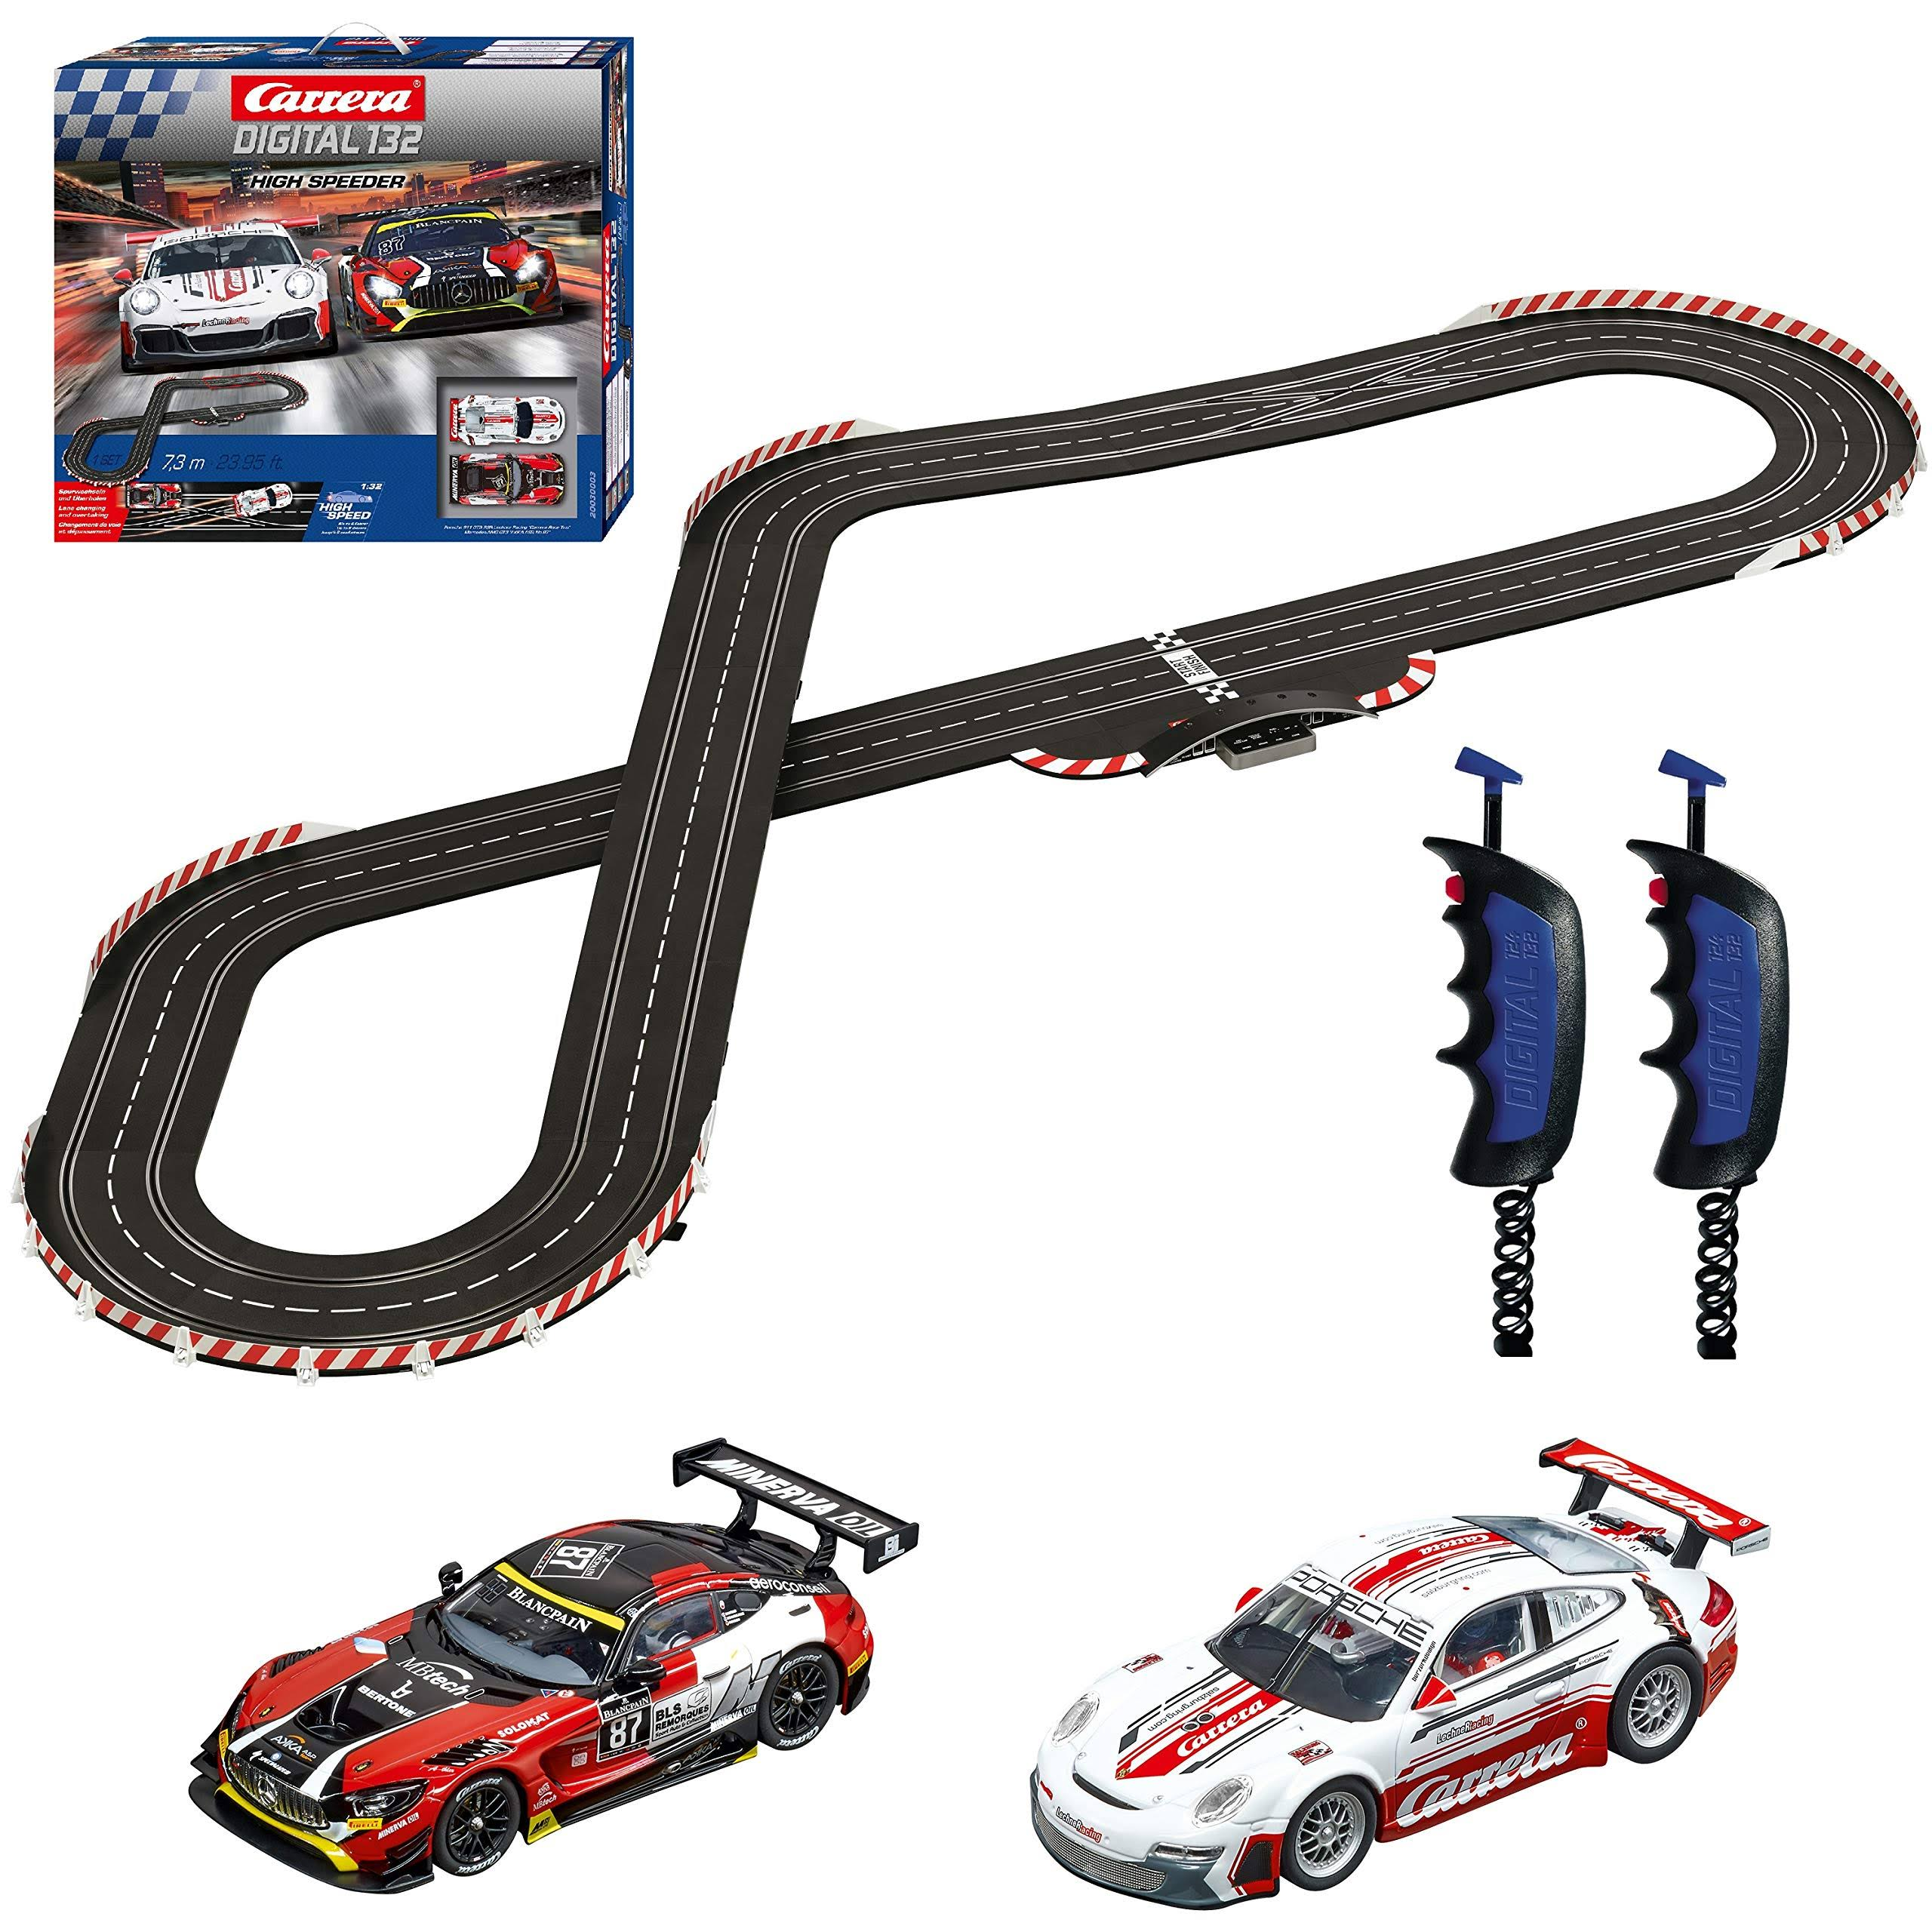 Carrera Digital 132 High Speeder Race Set